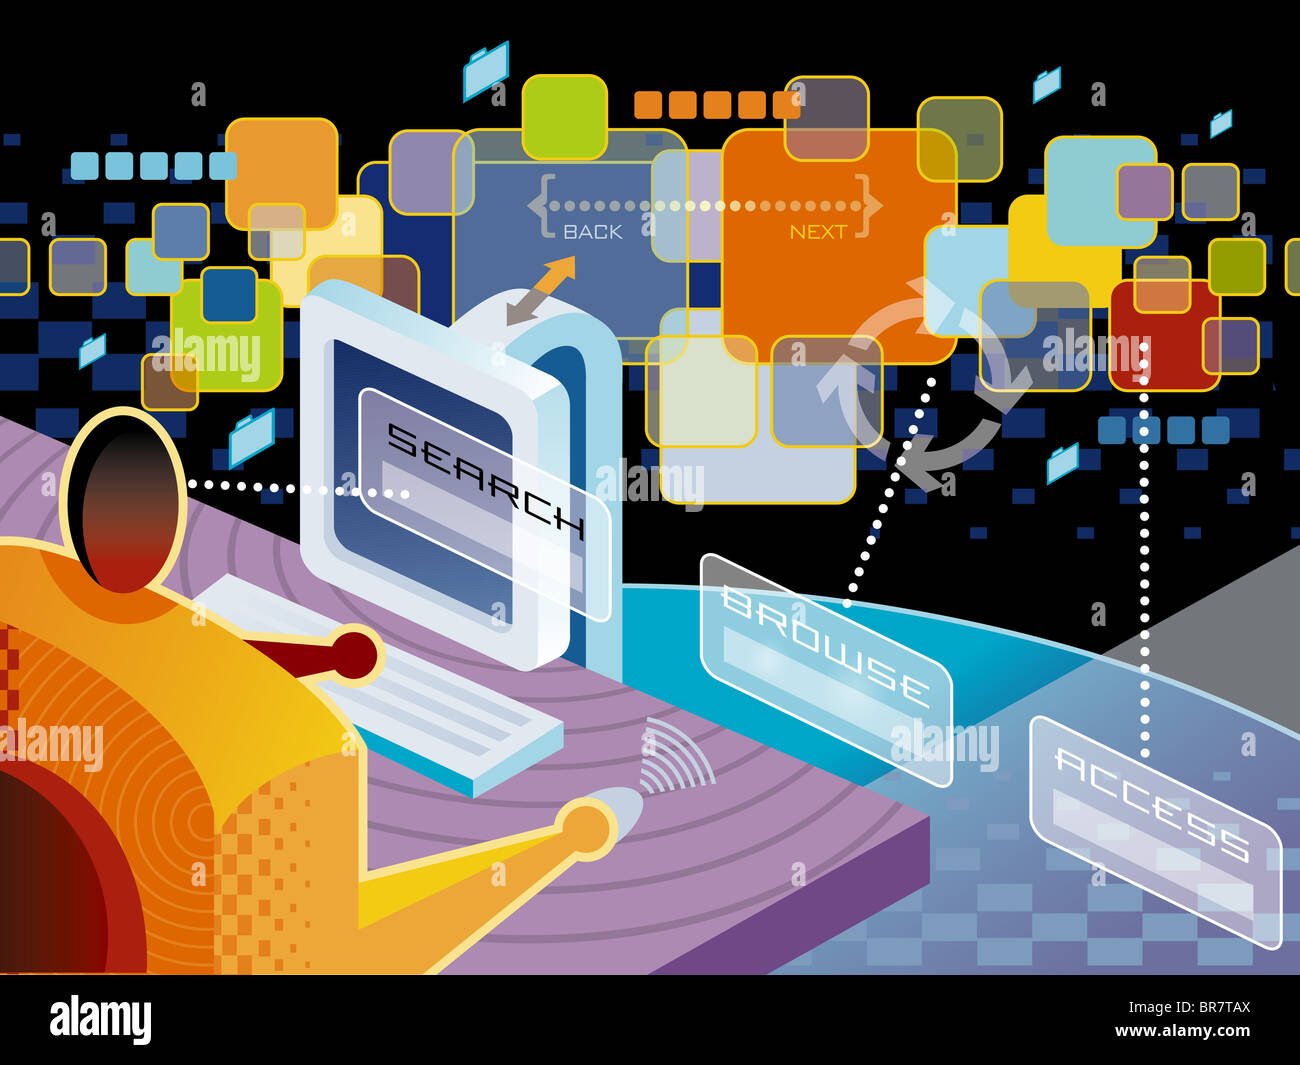 A Man Using Web Browser Stock Photo 31520242 Alamy What Is Diagram